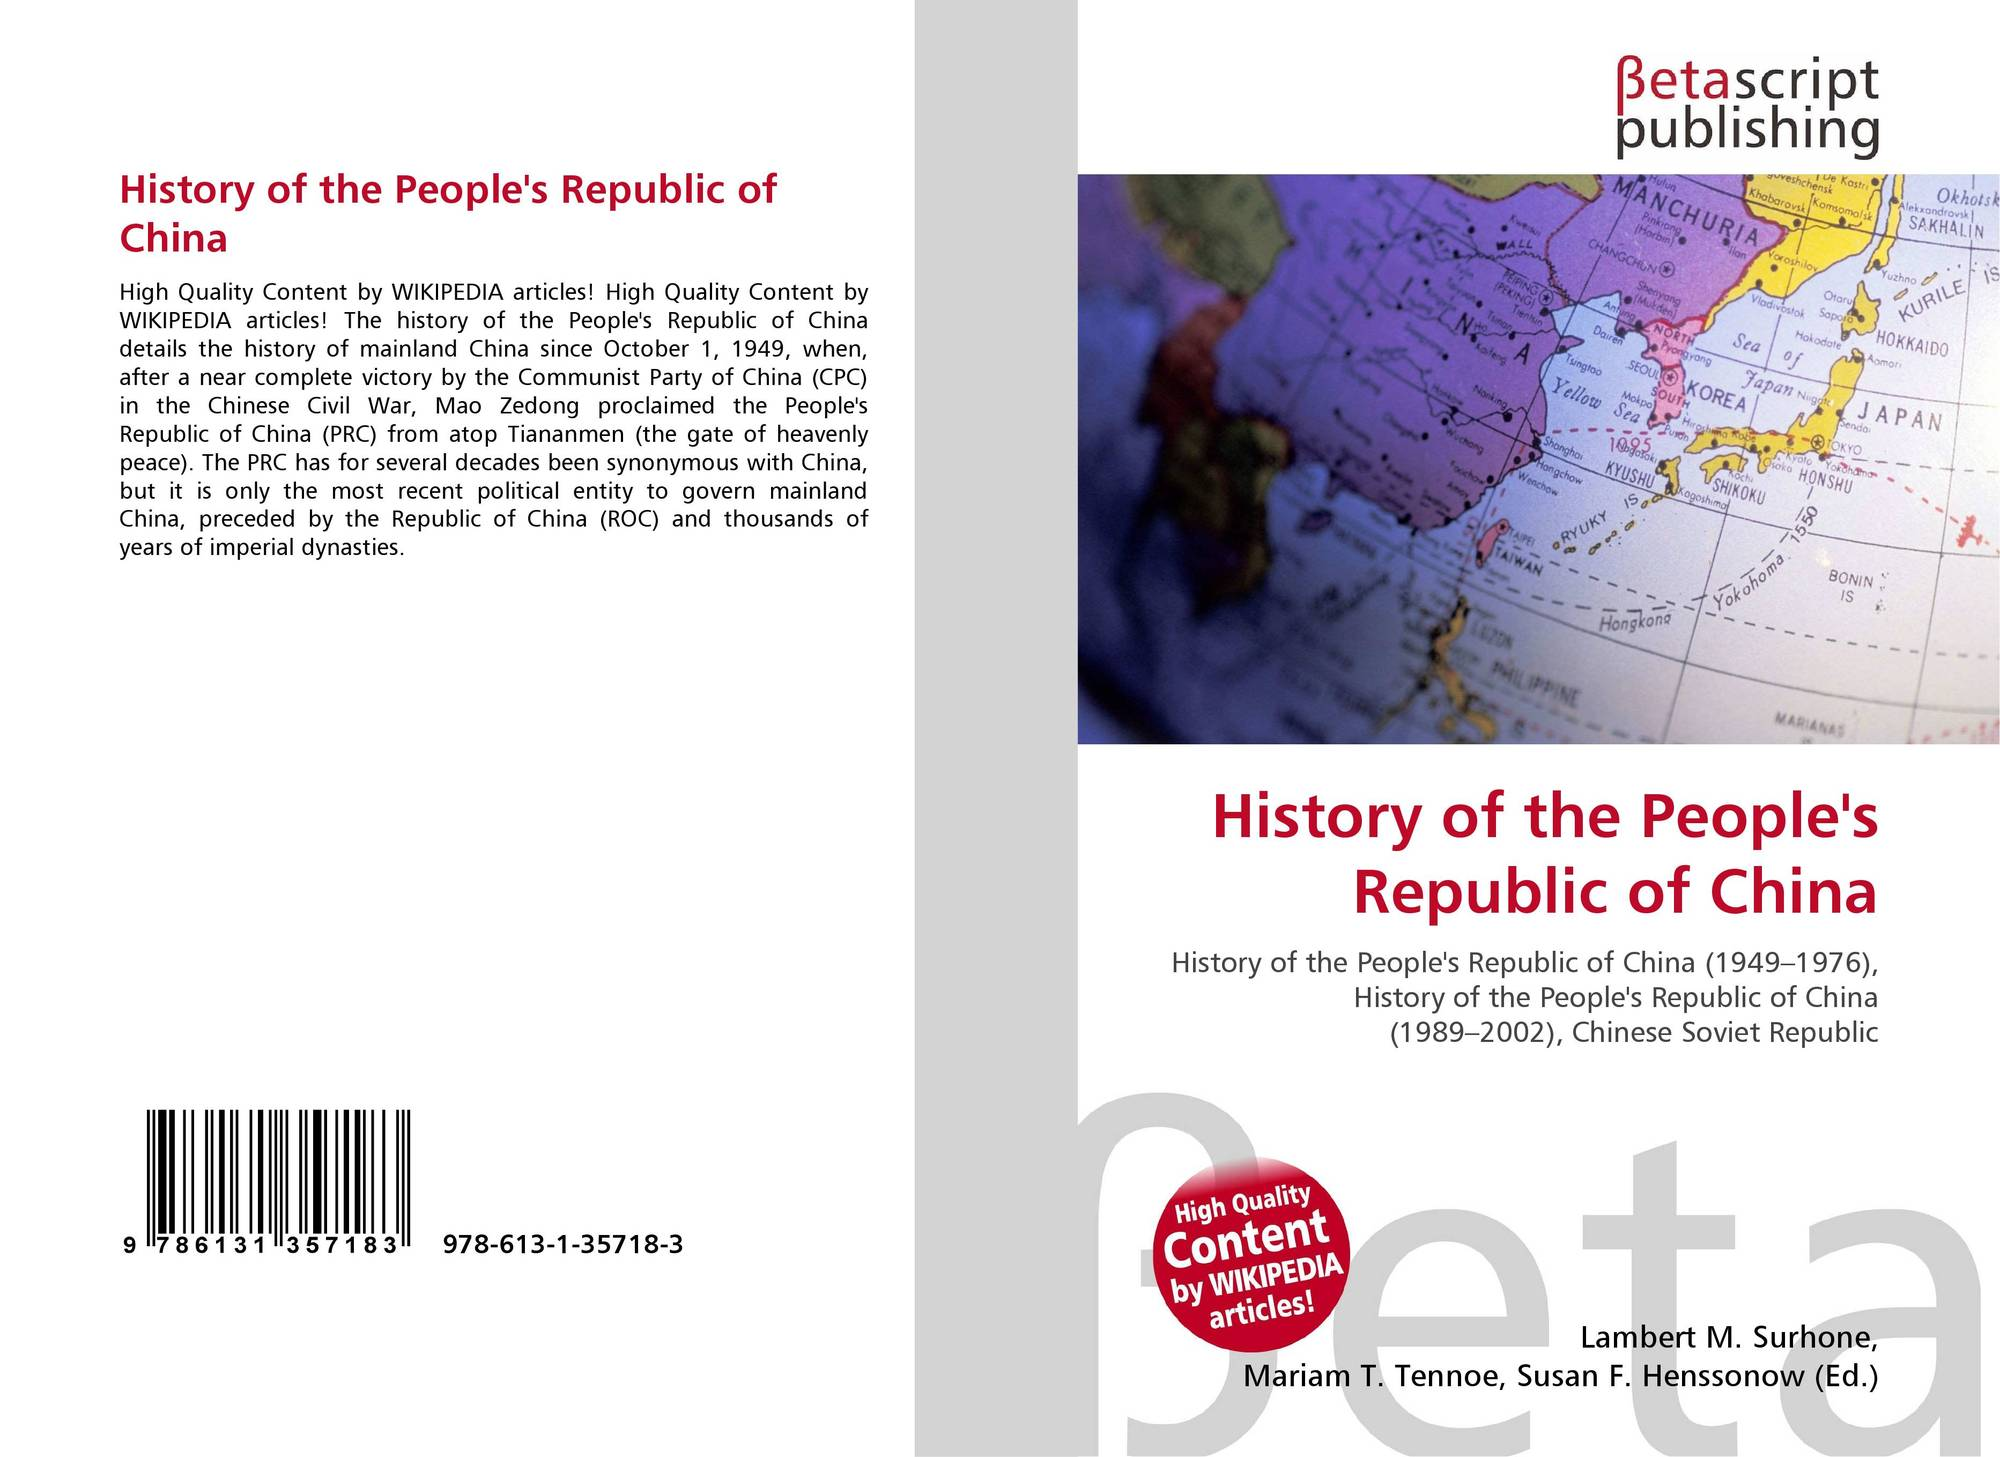 an introduction to the history of the peoples republic of china People's courts and 31 higher people's courts located in the provinces see albert hy chen, an introduction to the legal system of the people's republic of china 107-108 (1998.